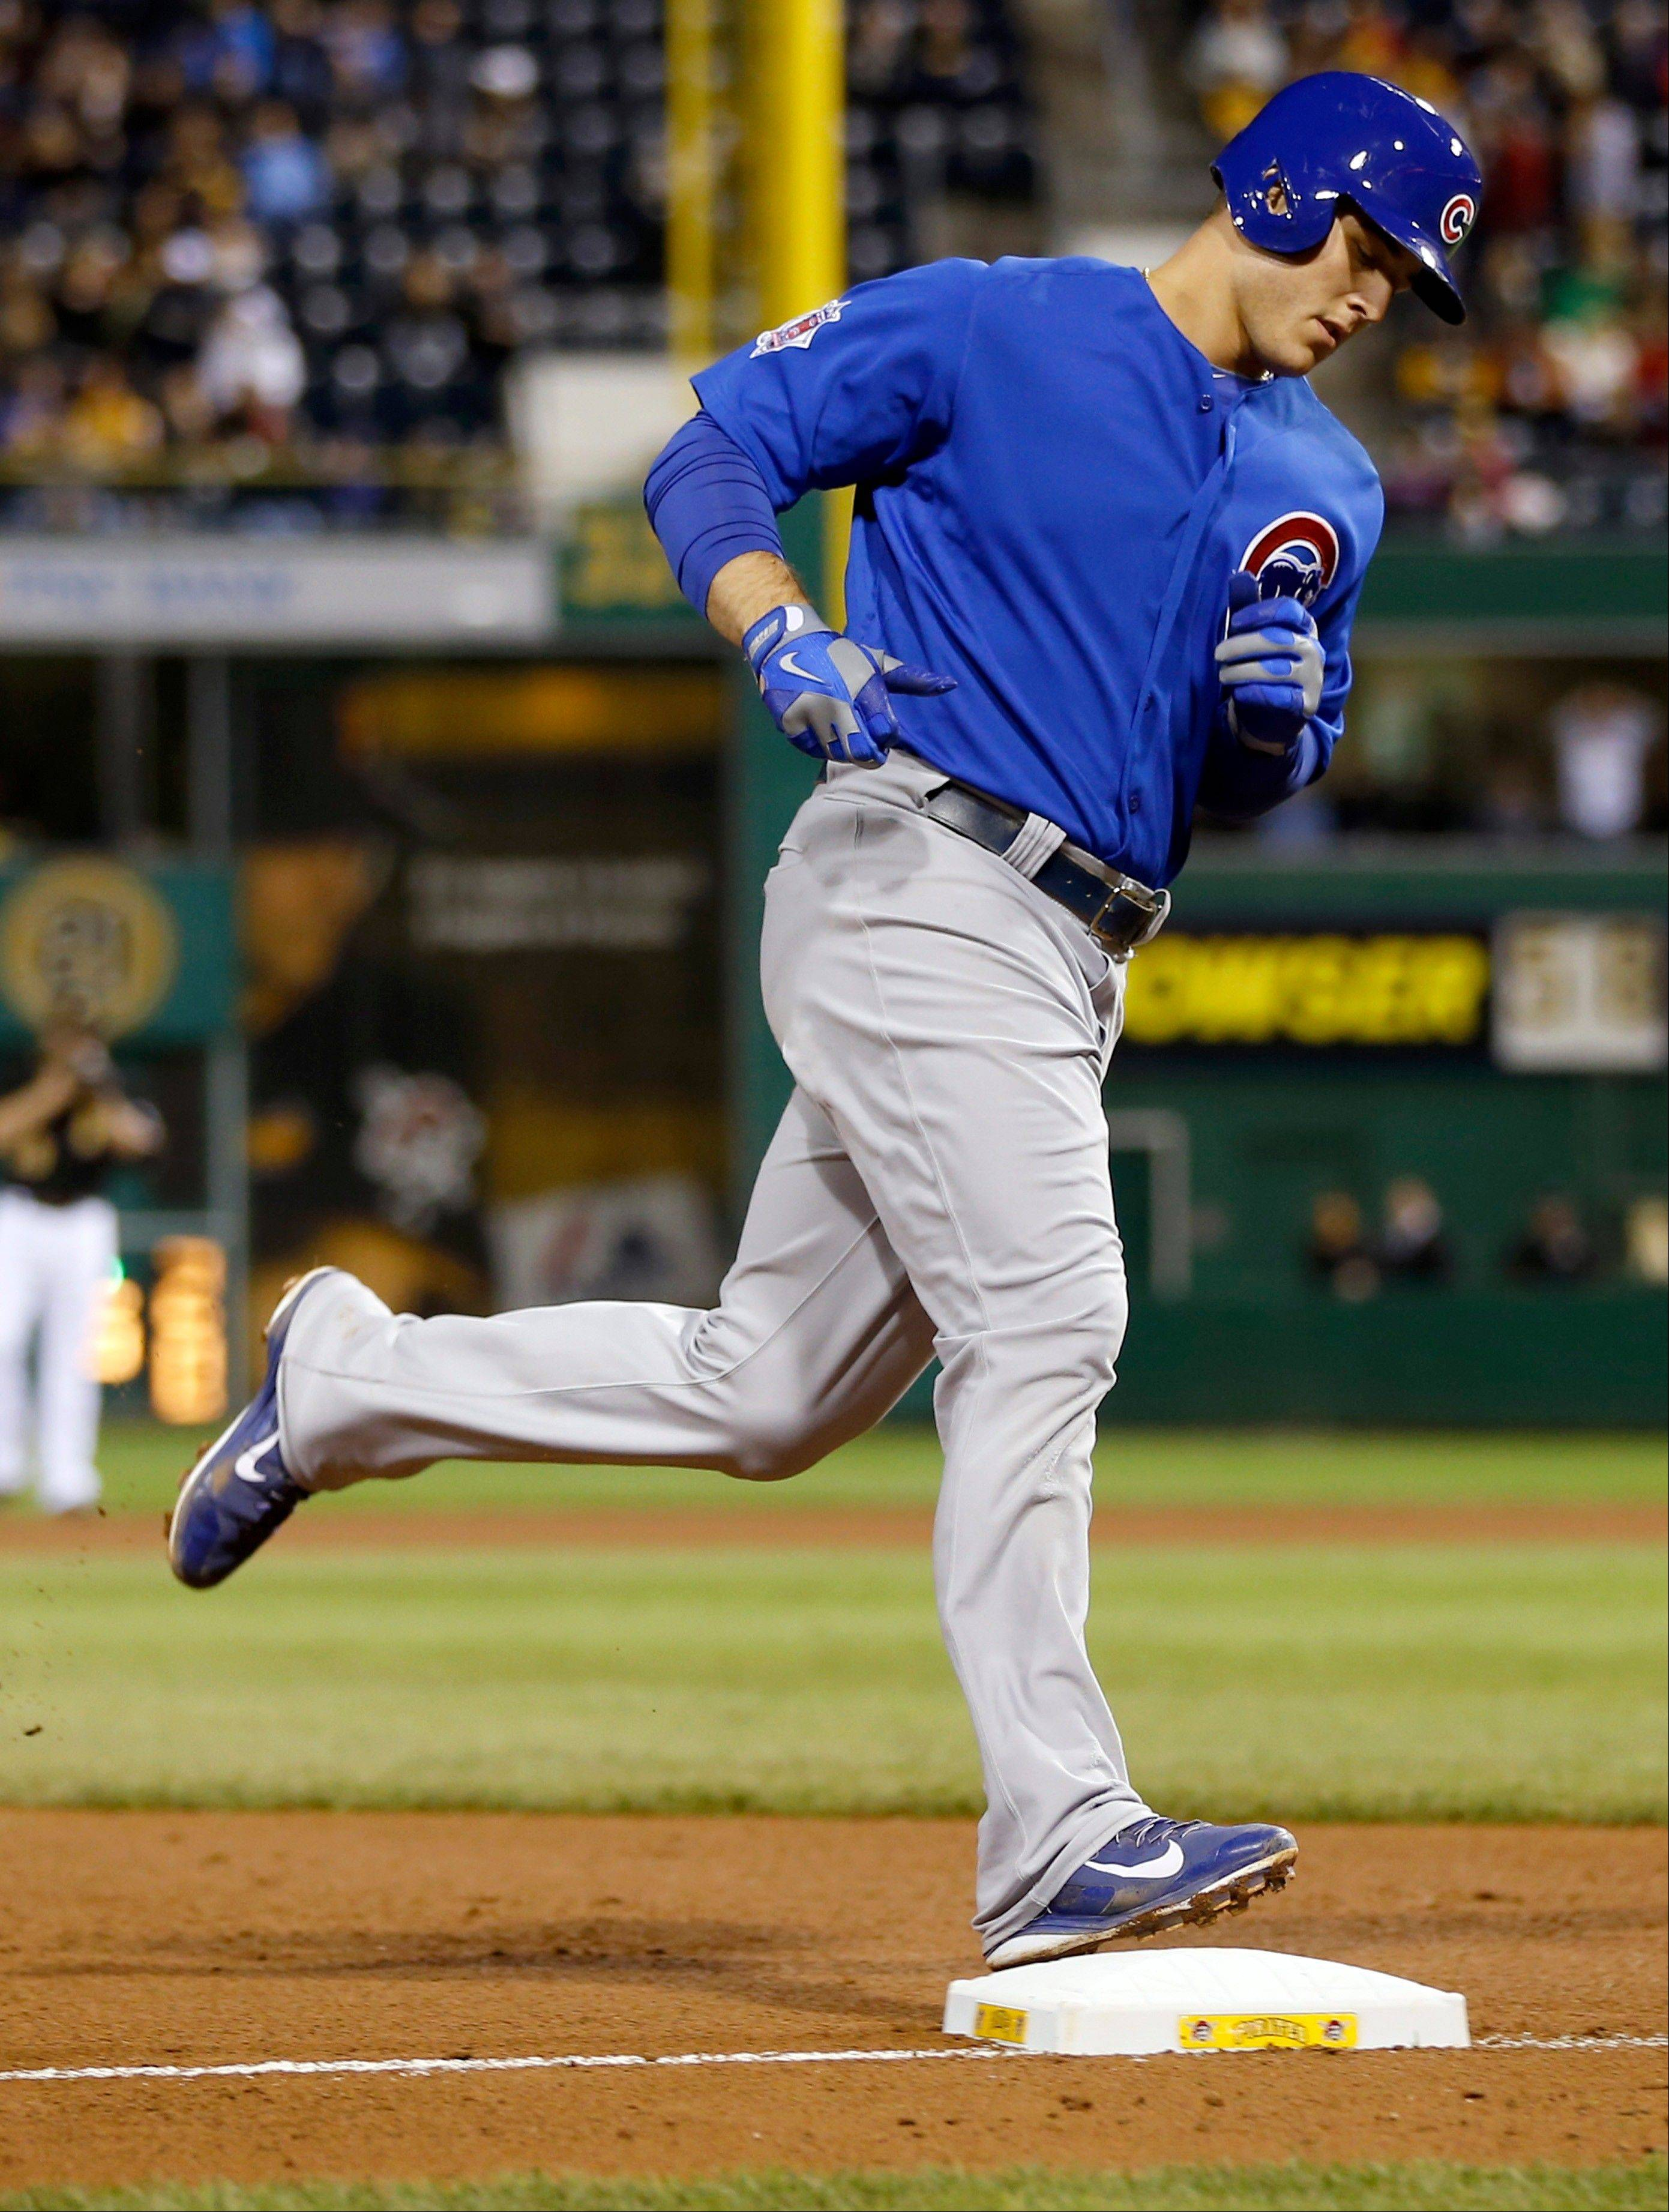 Chicago Cubs' Anthony Rizzo hits third as he rounds the bases after hitting a two-run home run against the Pittsburgh Pirates in the seventh inning of the baseball game on Friday, Sept. 13, 2013, in Pittsburgh. The Cubs won 5-4. (AP Photo/Keith Srakocic)